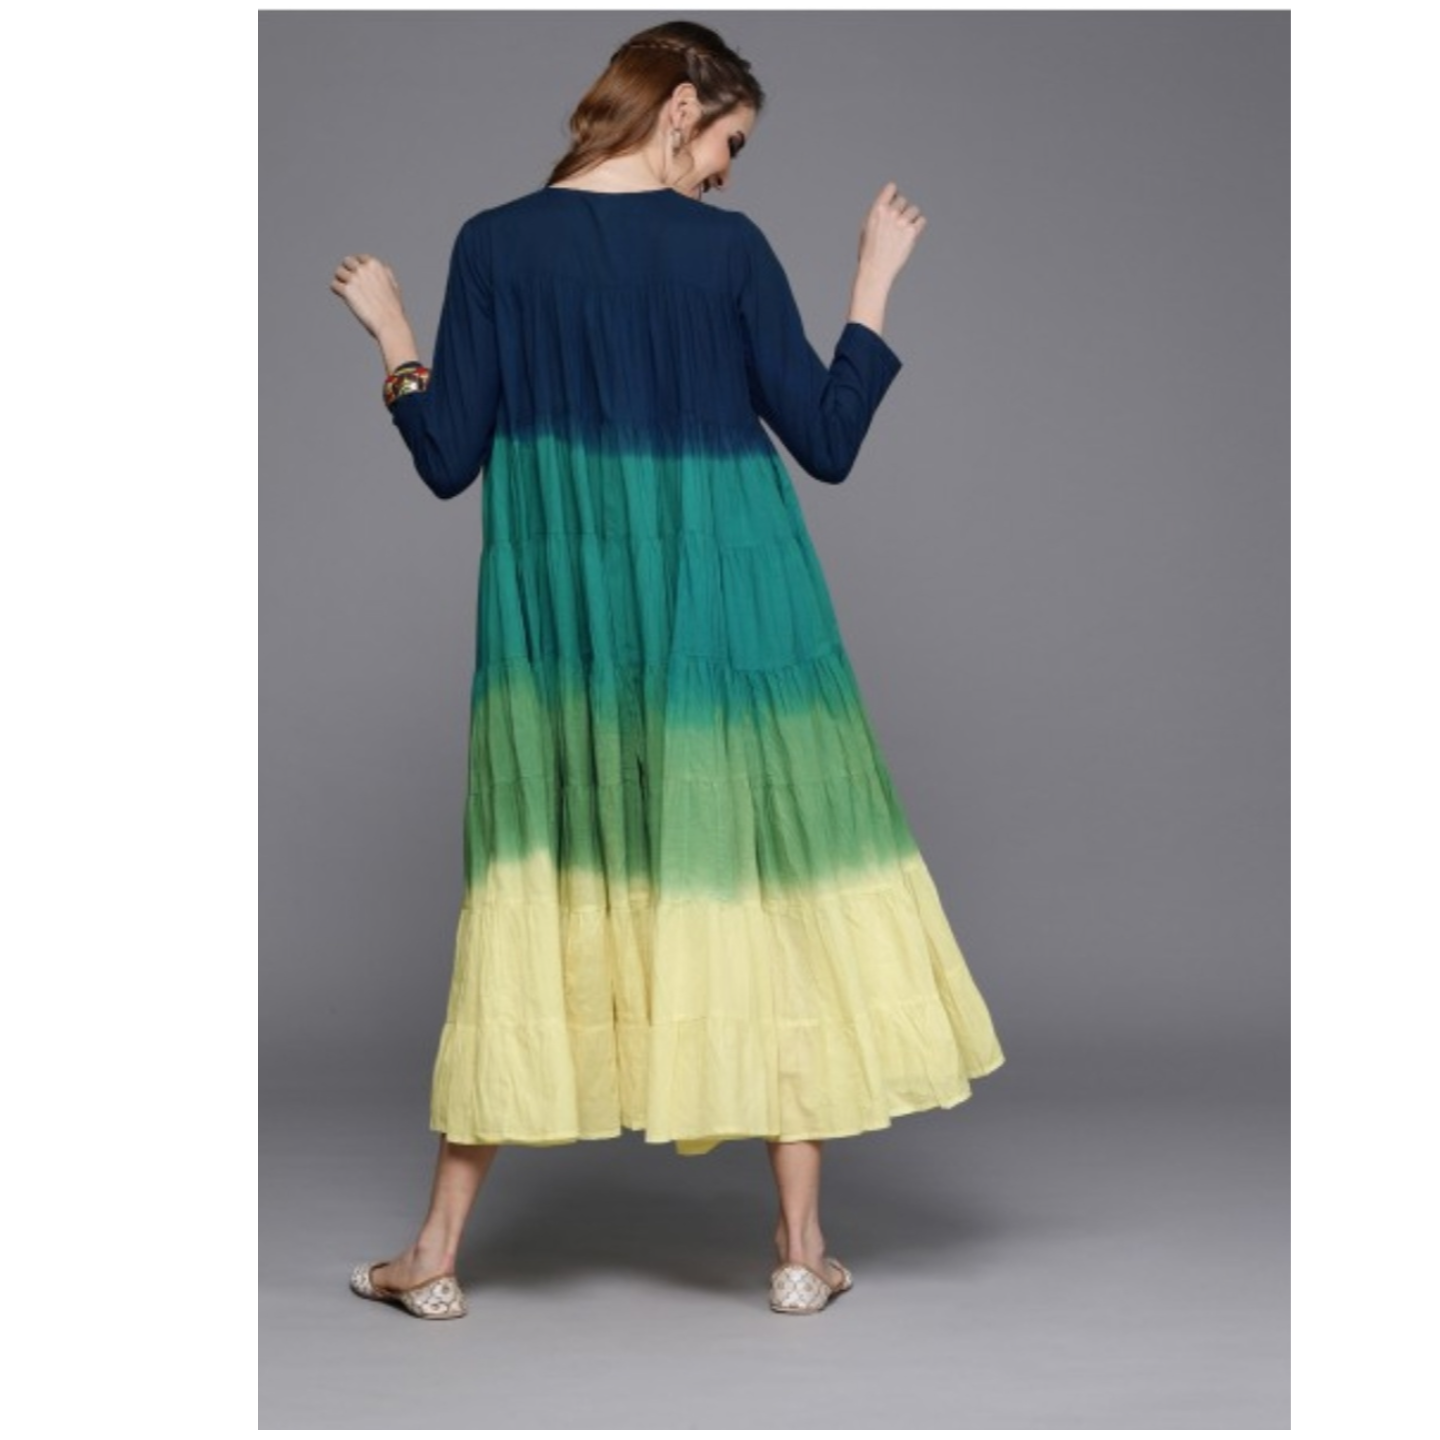 Blue & Yellow Dyed A-Line Tiered Ombre Dress With Gathers